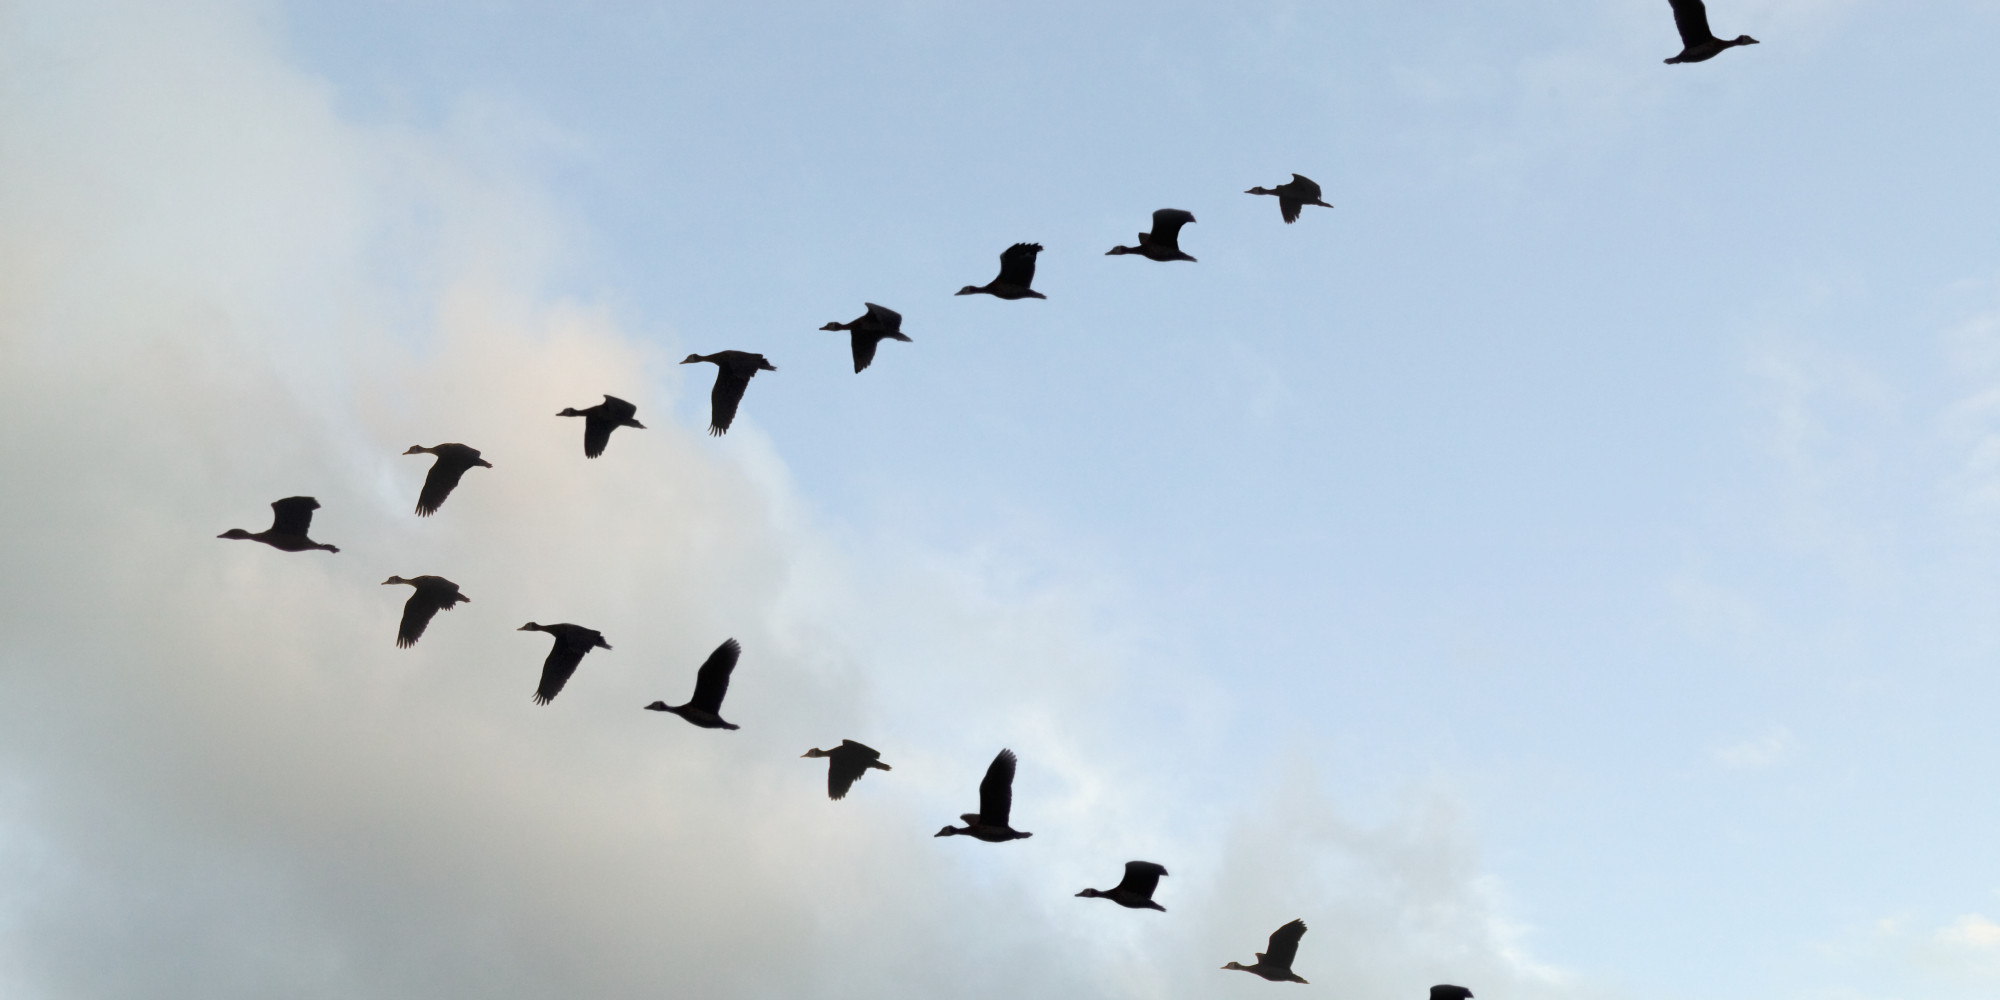 Image result for V OF BIRDS